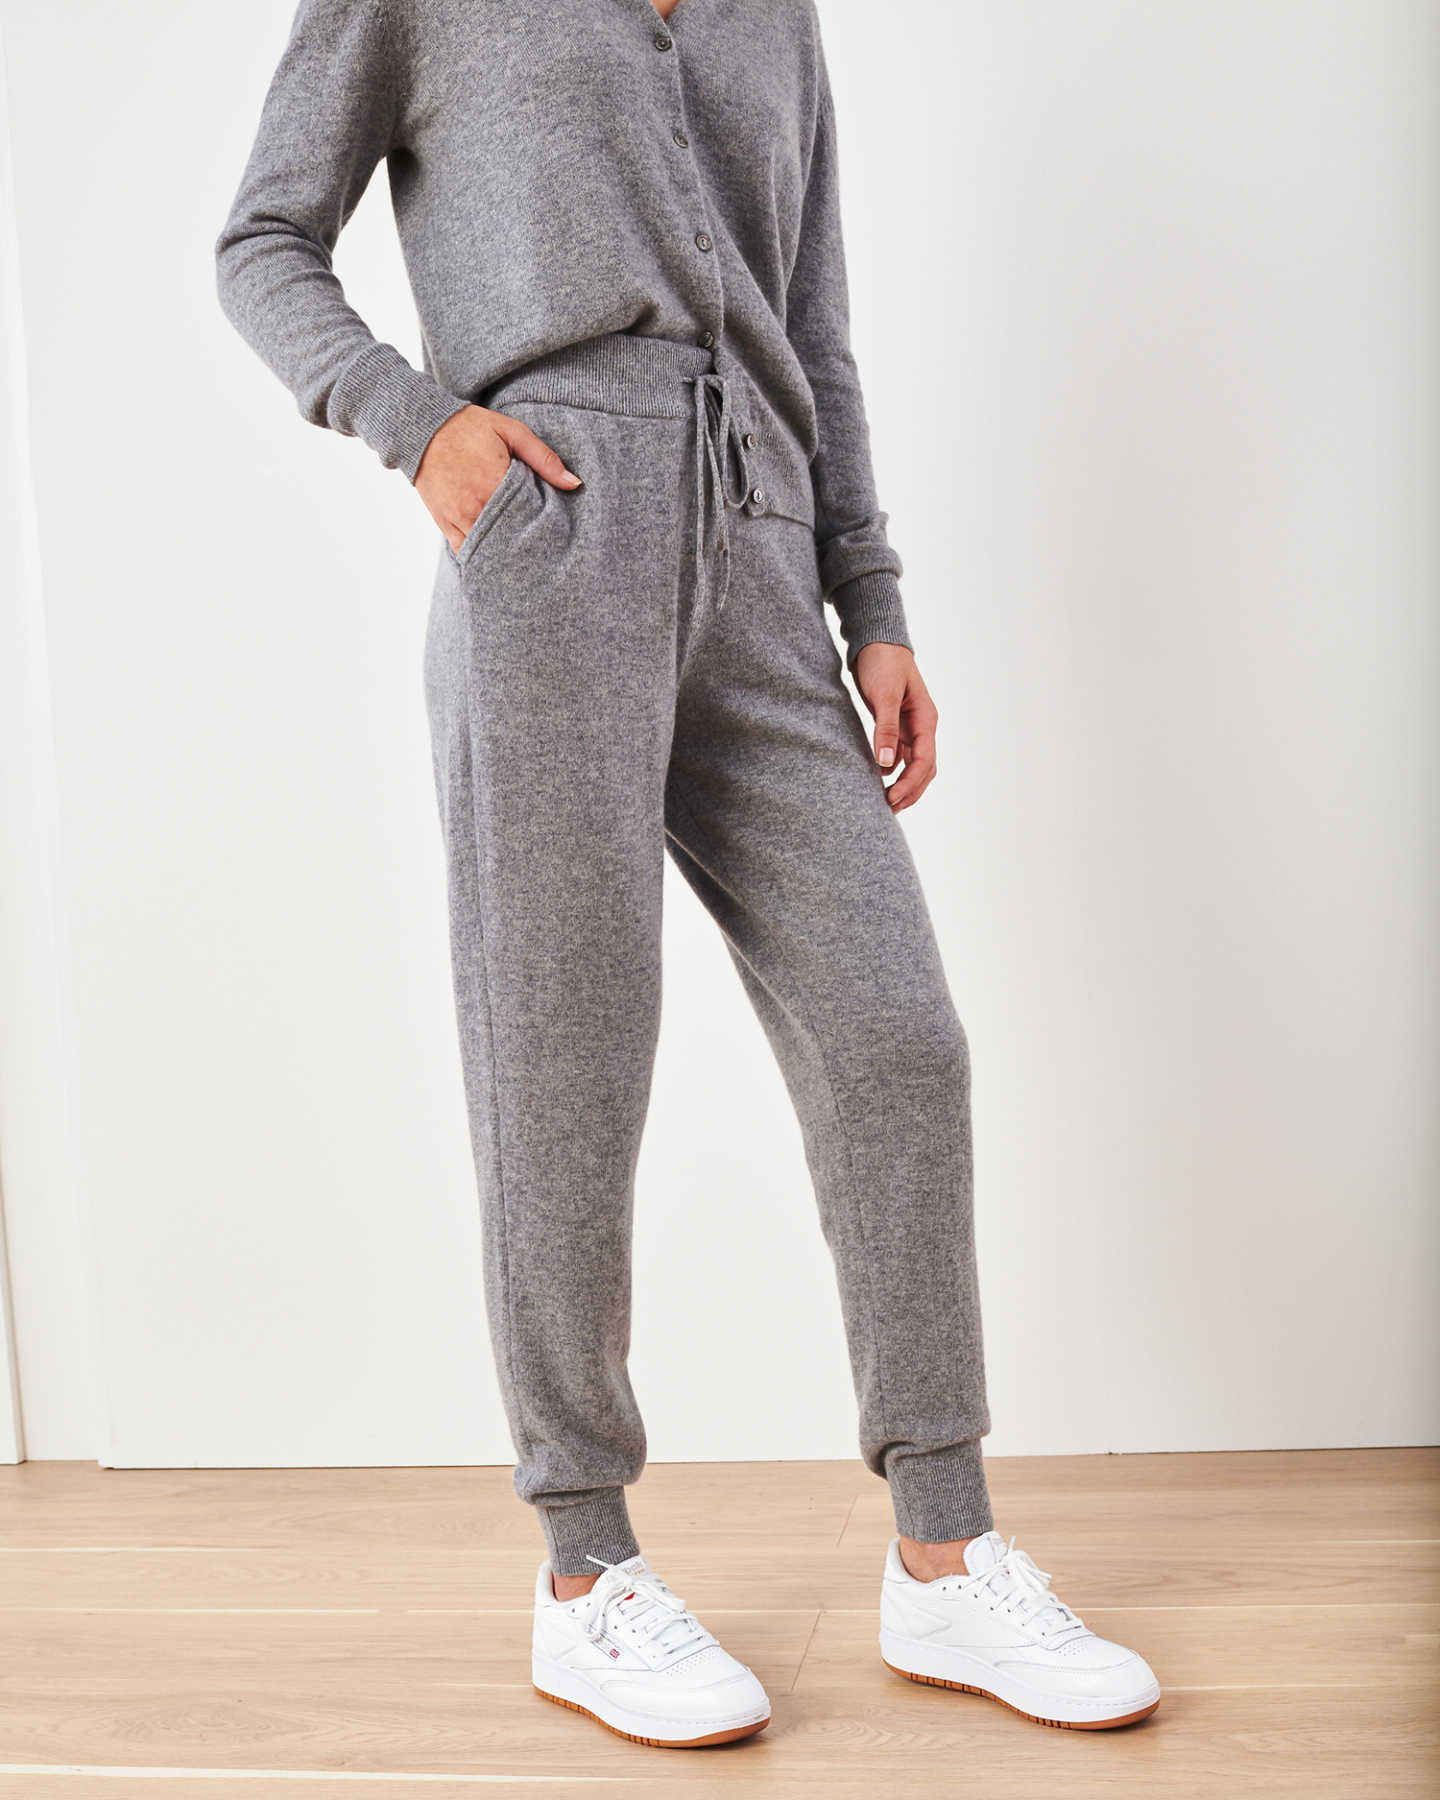 Woman wearing grey cashmere sweatpants & cashmere joggers standing